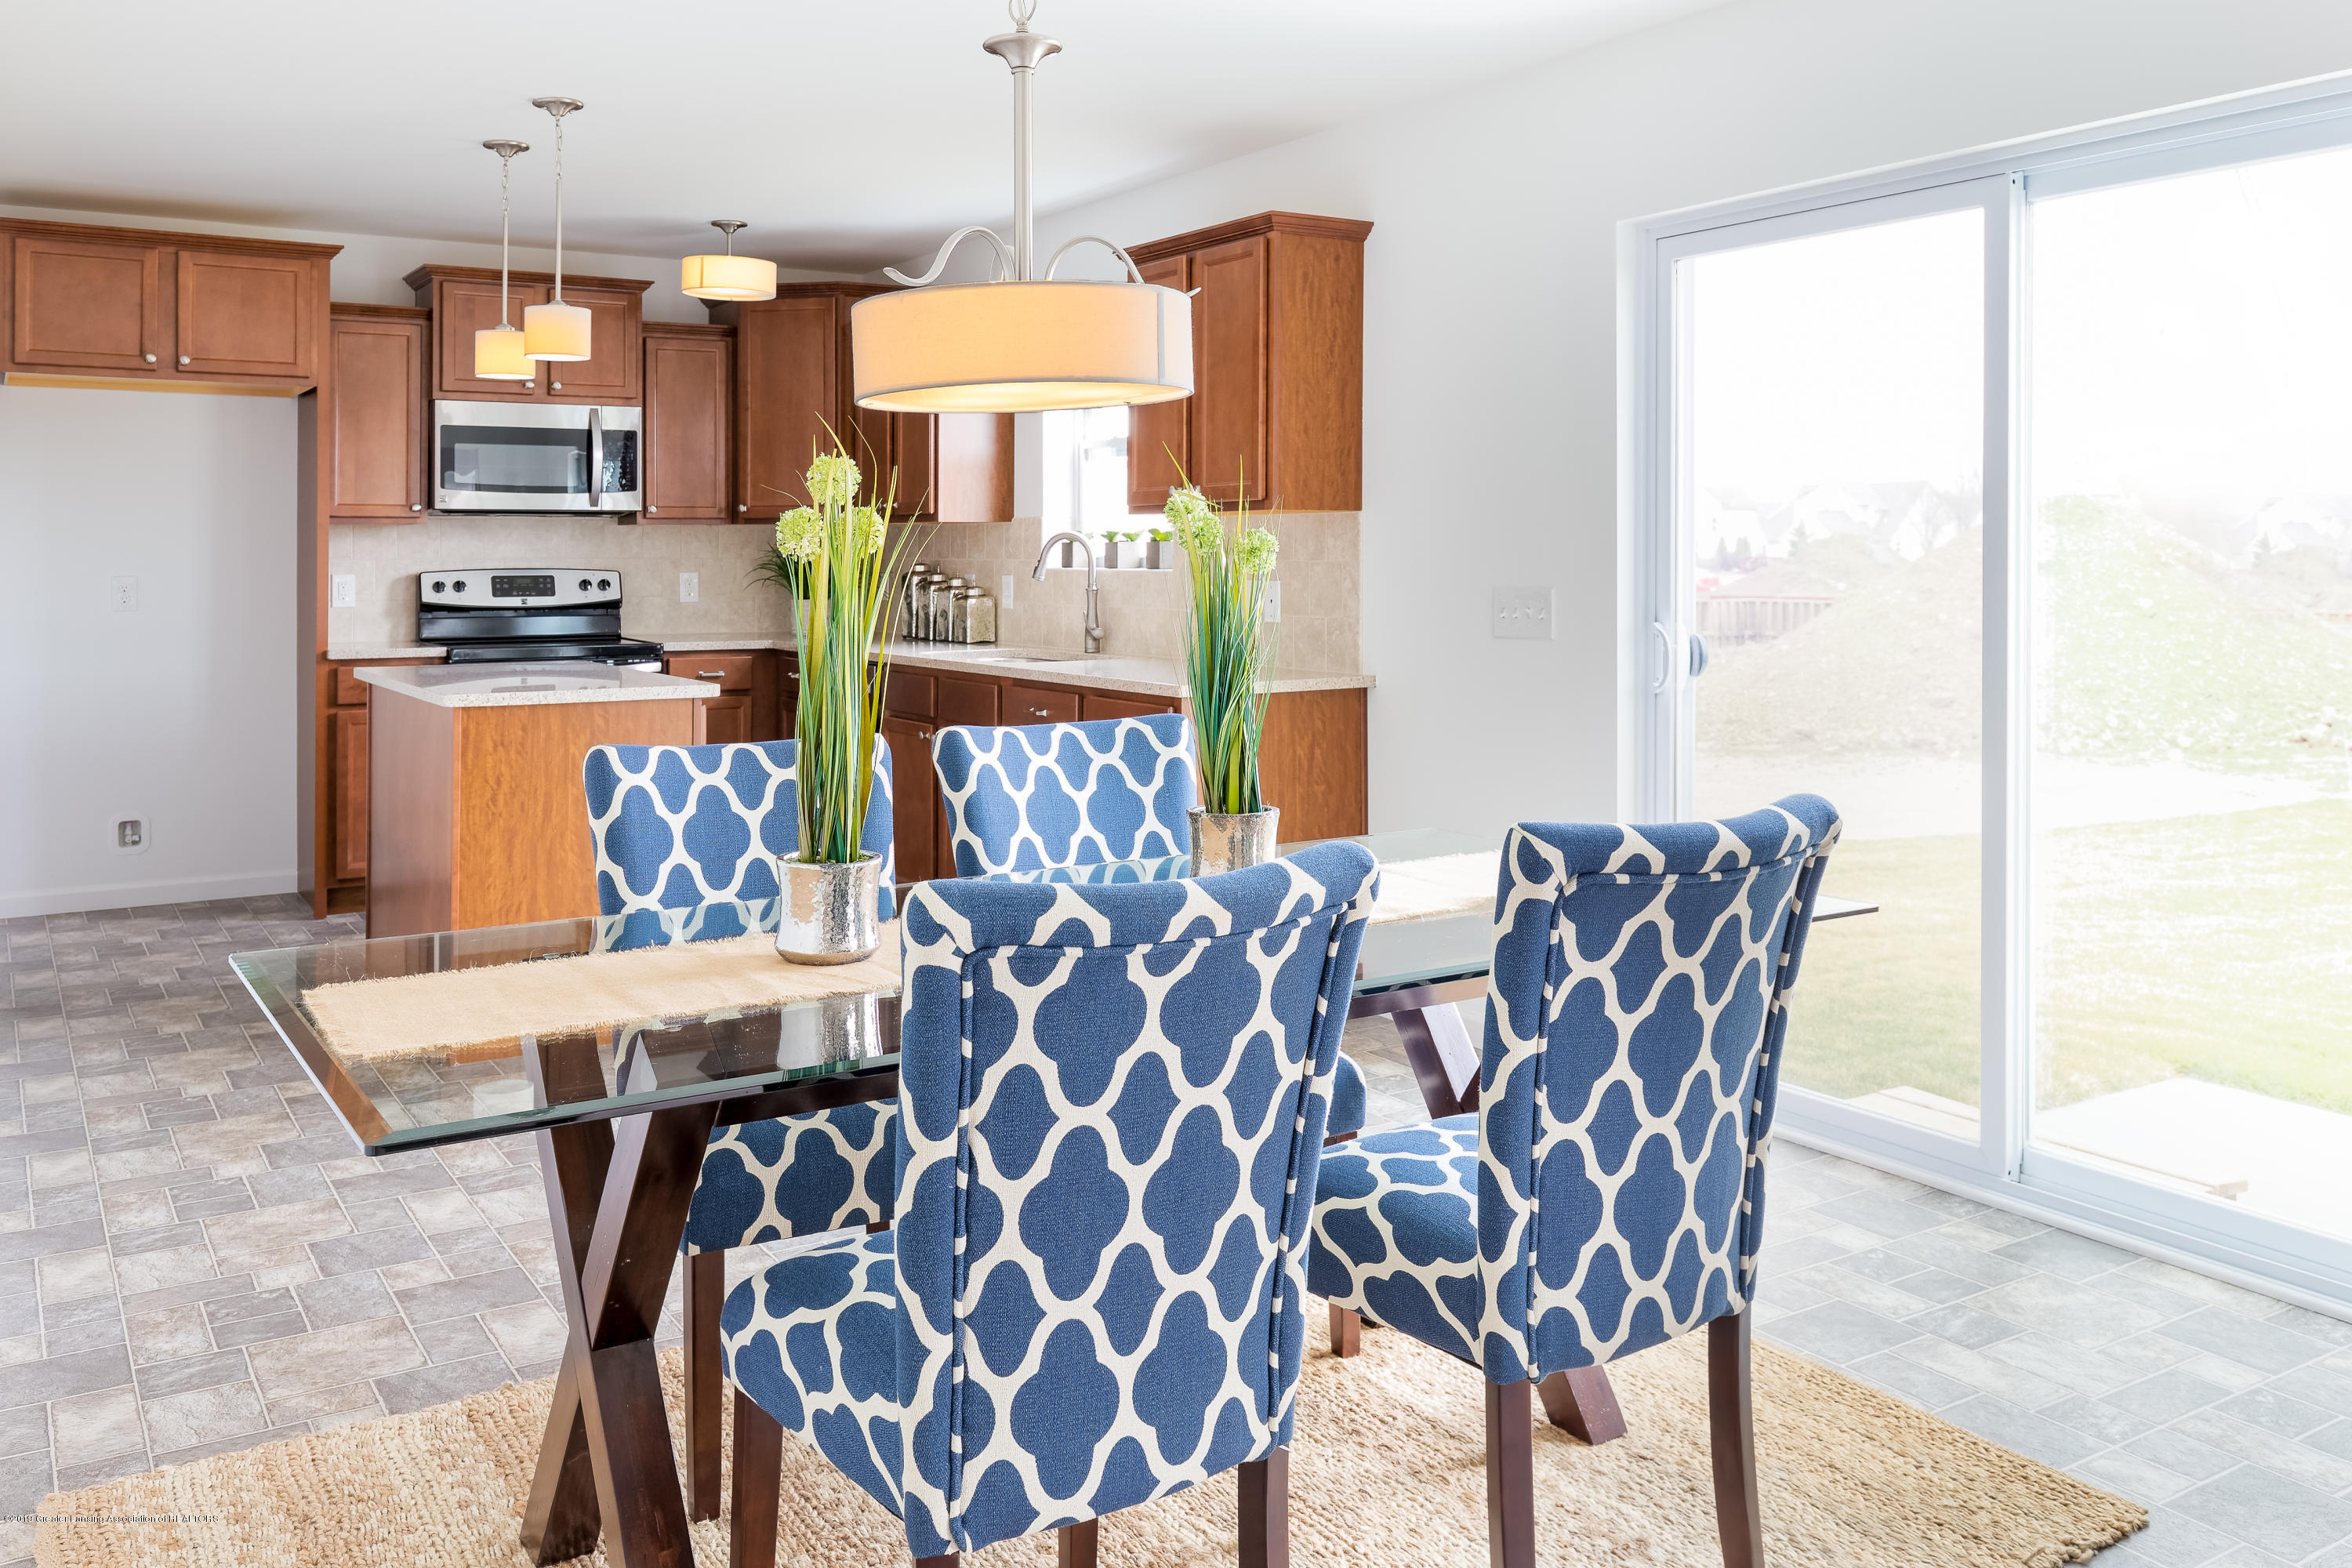 201 Ayla Drive - Dining TSP077-E2070-Staged-13 - 6